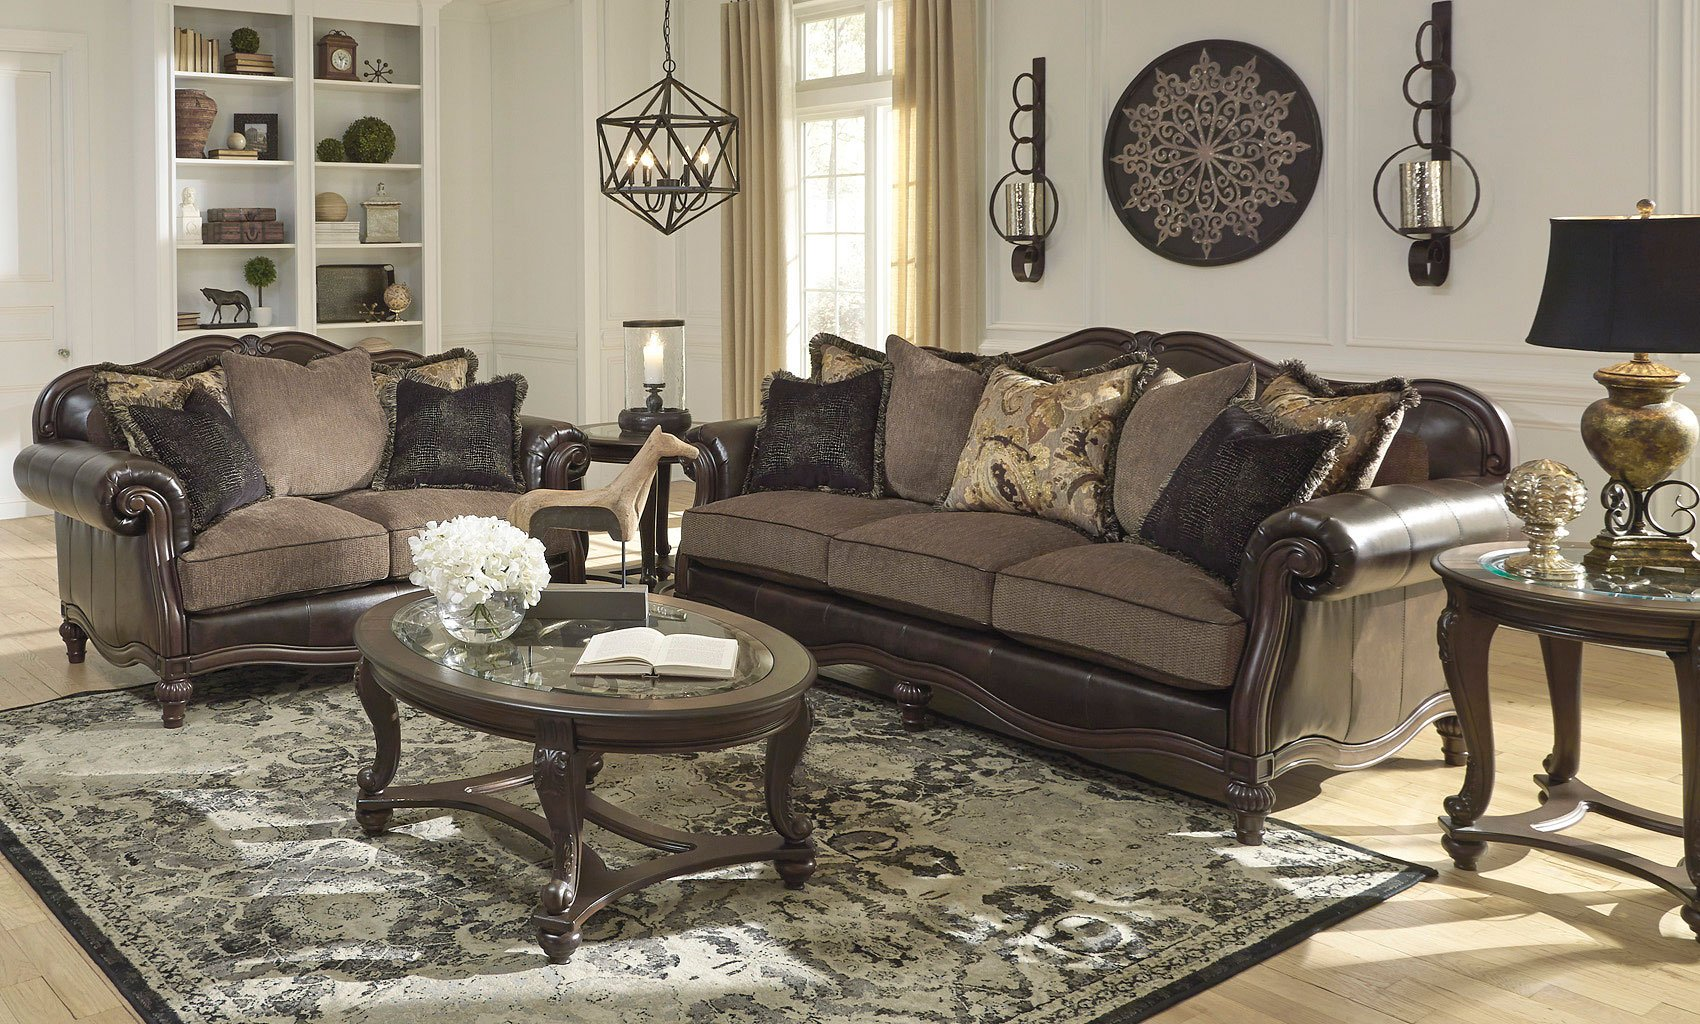 Winnsboro DuraBlend Vintage Living Room Set